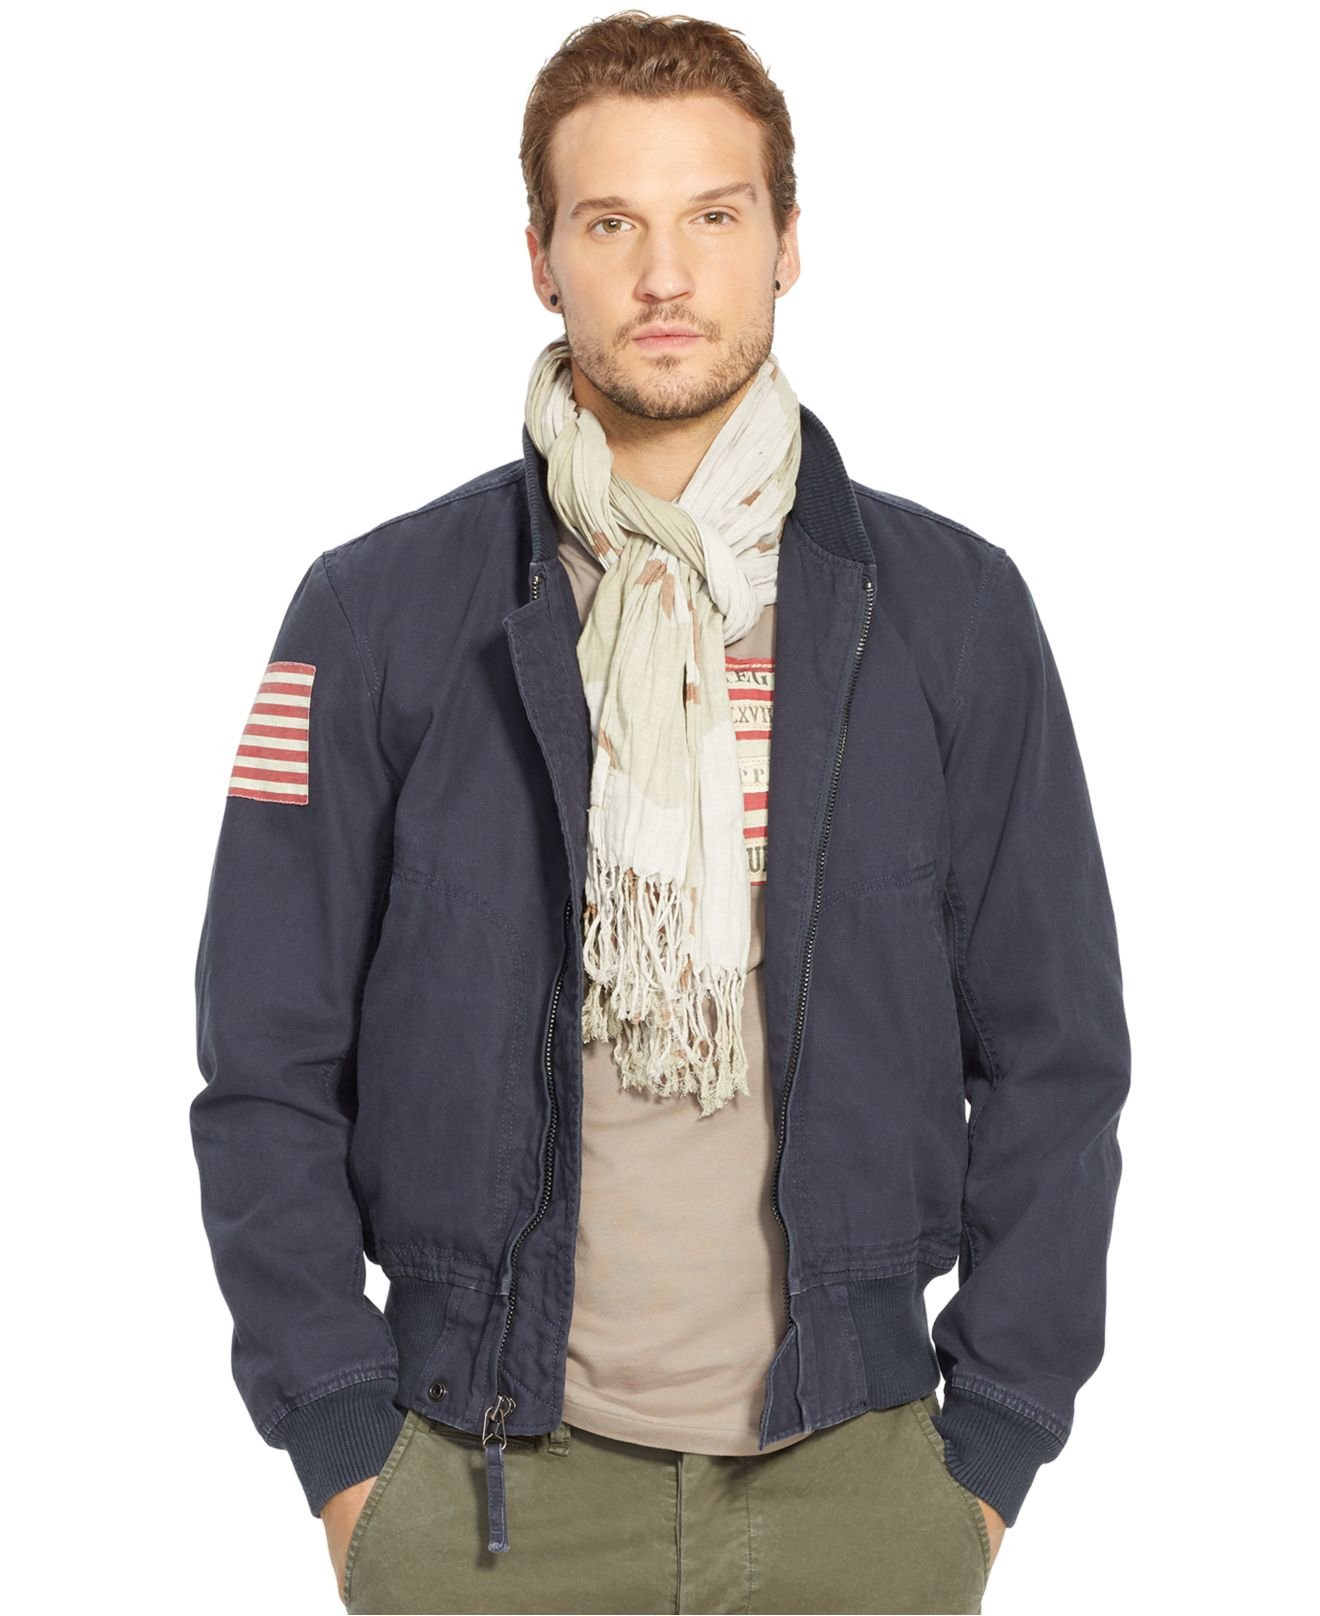 Denim u0026 supply ralph lauren Menu0026#39;s Canvas Bomber Jacket in Black for Men | Lyst